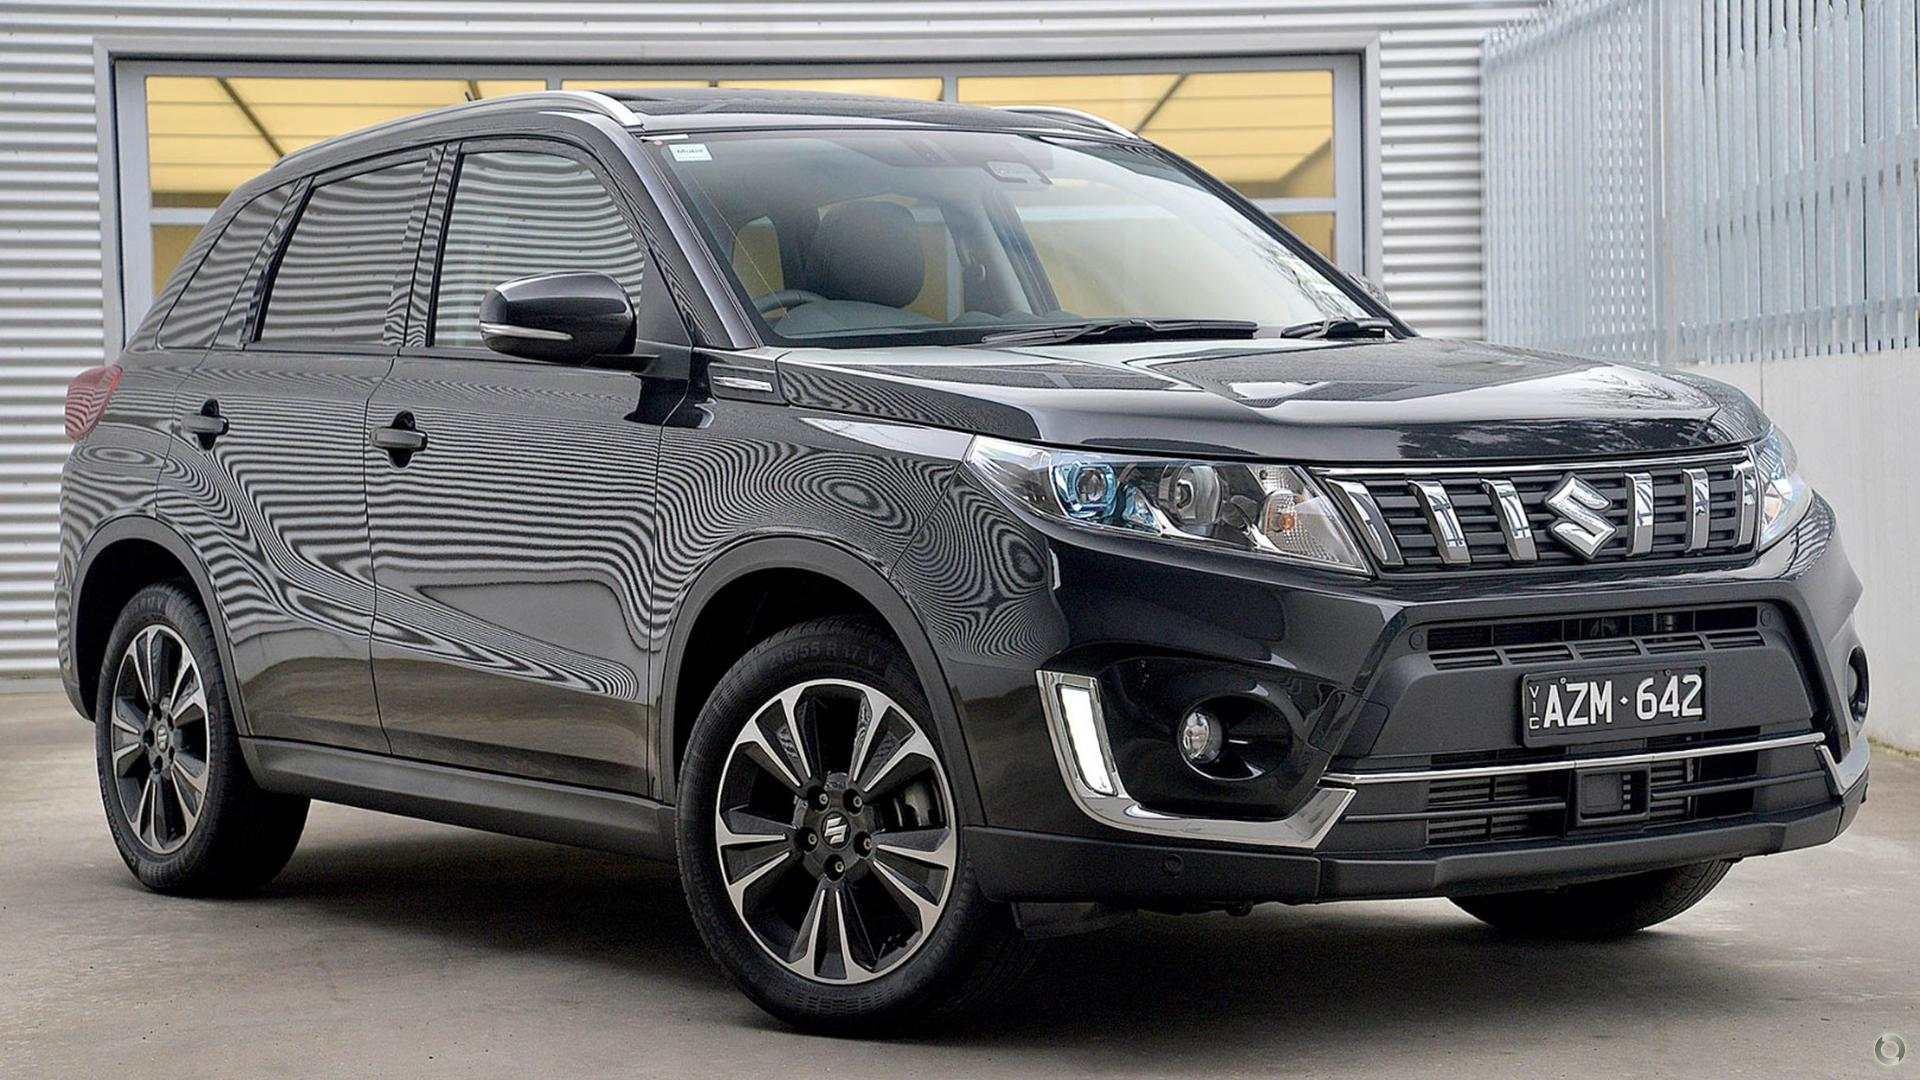 2019 Suzuki Vitara Turbo LY Series II